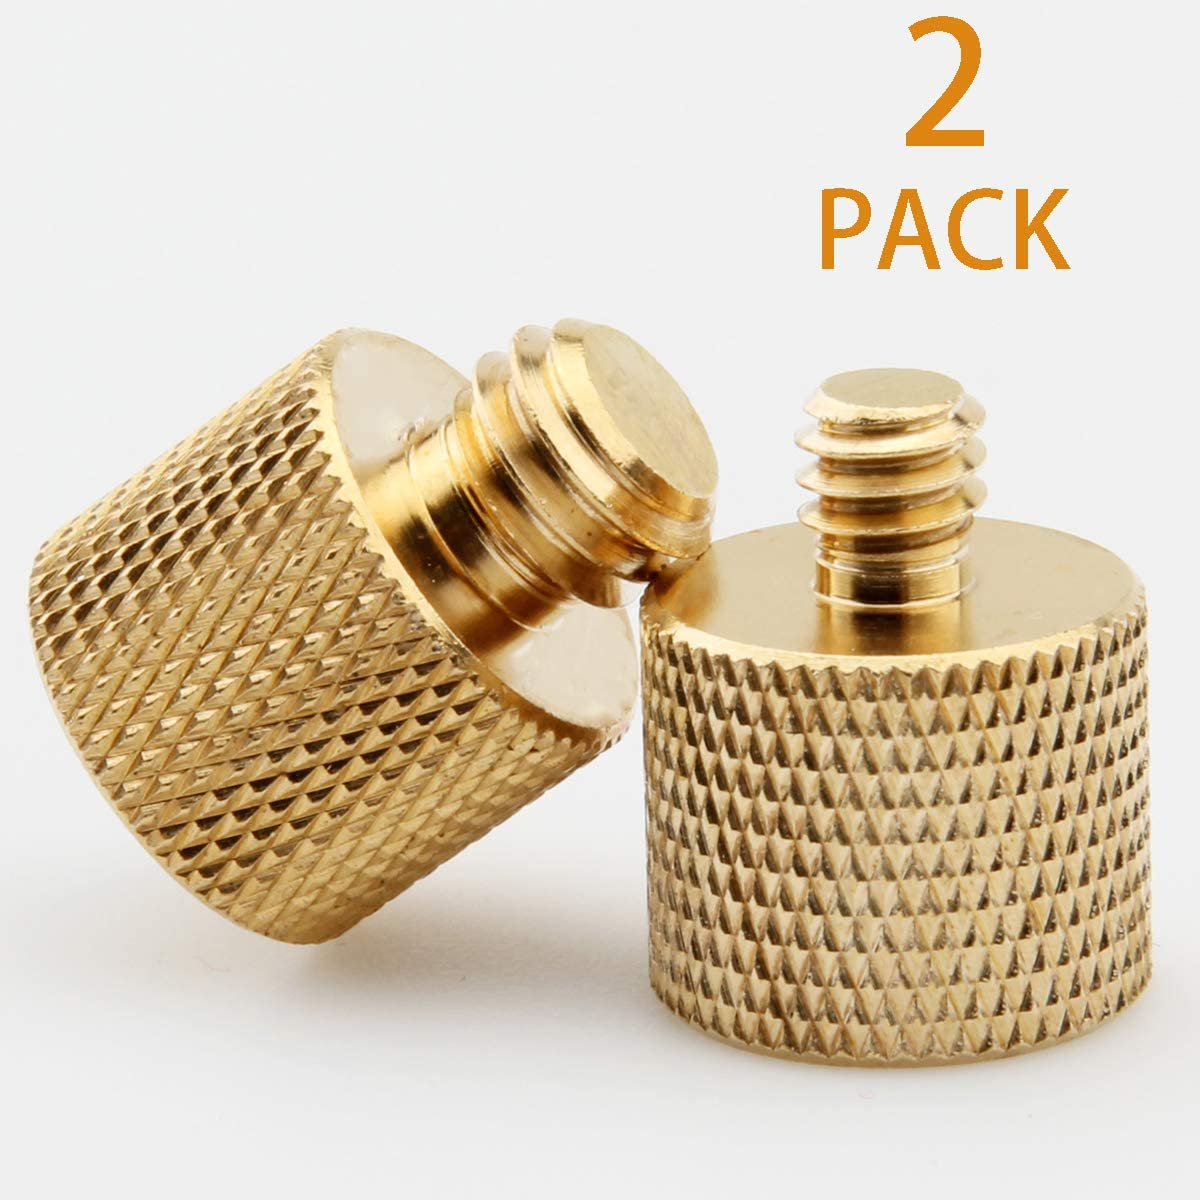 "XINJUE 2 Pieces,(Brass) Camera Microphone Stand Accessories Adapter, 1 Piece 1/4""-20 Internal Thread to 3/8"" -16 External Thread: 1 Piece 3/8""-16 Internal Thread to 1/4-20 External Thread"